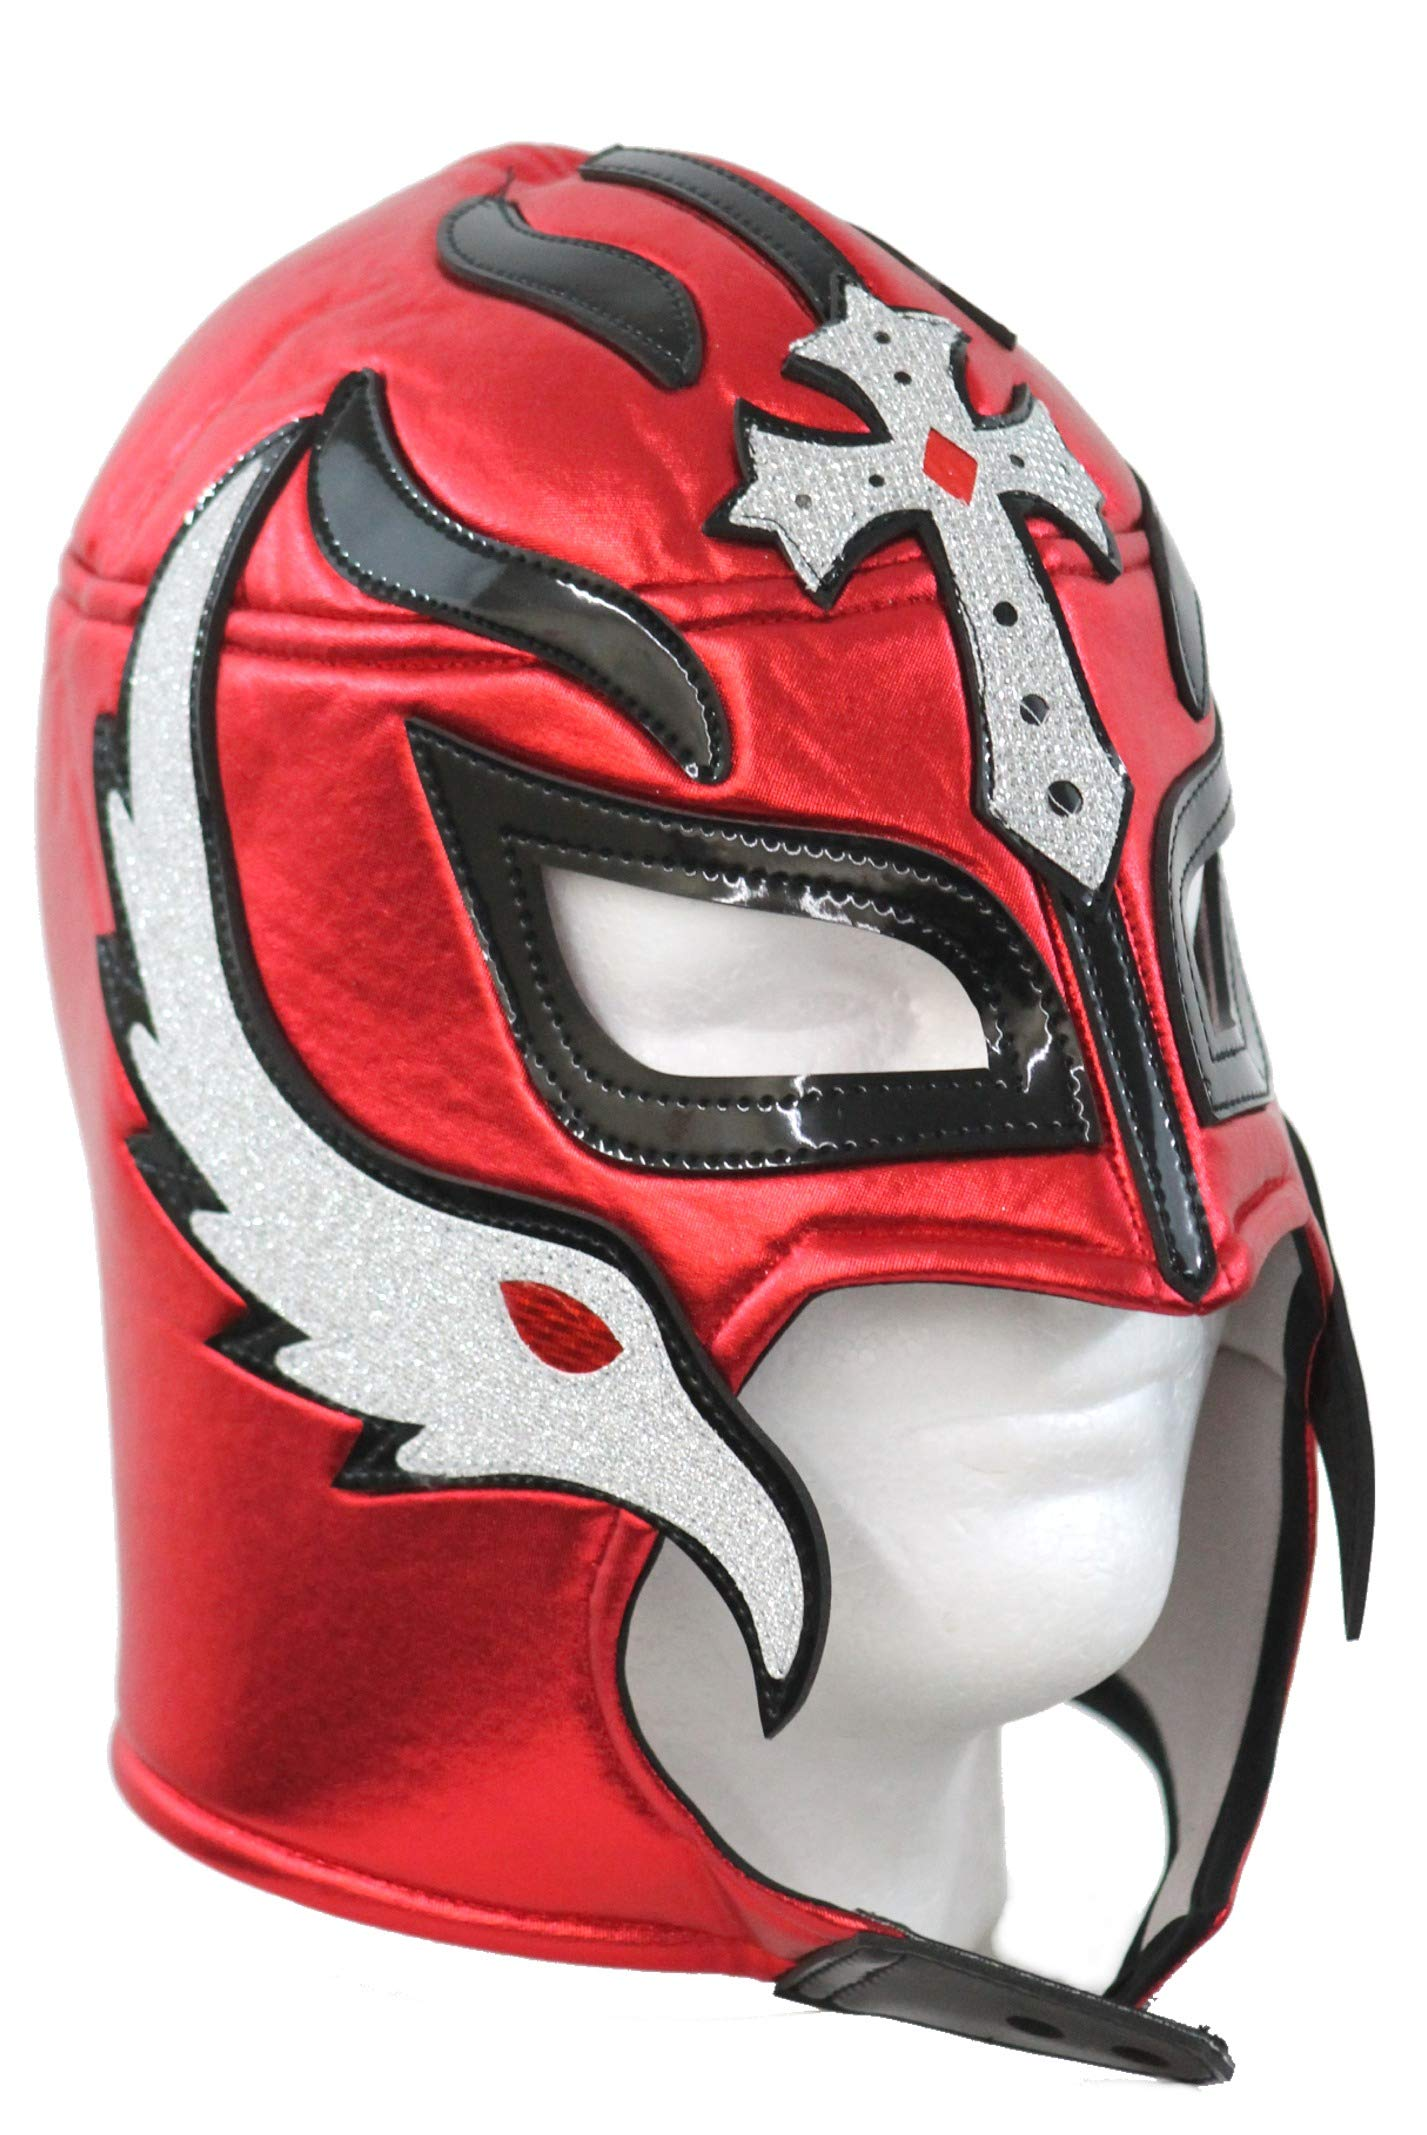 Rey Mysterio Lucha Libre Wrestling Mask (pro-fit) Costume Wear- Red Black by Leos Imports